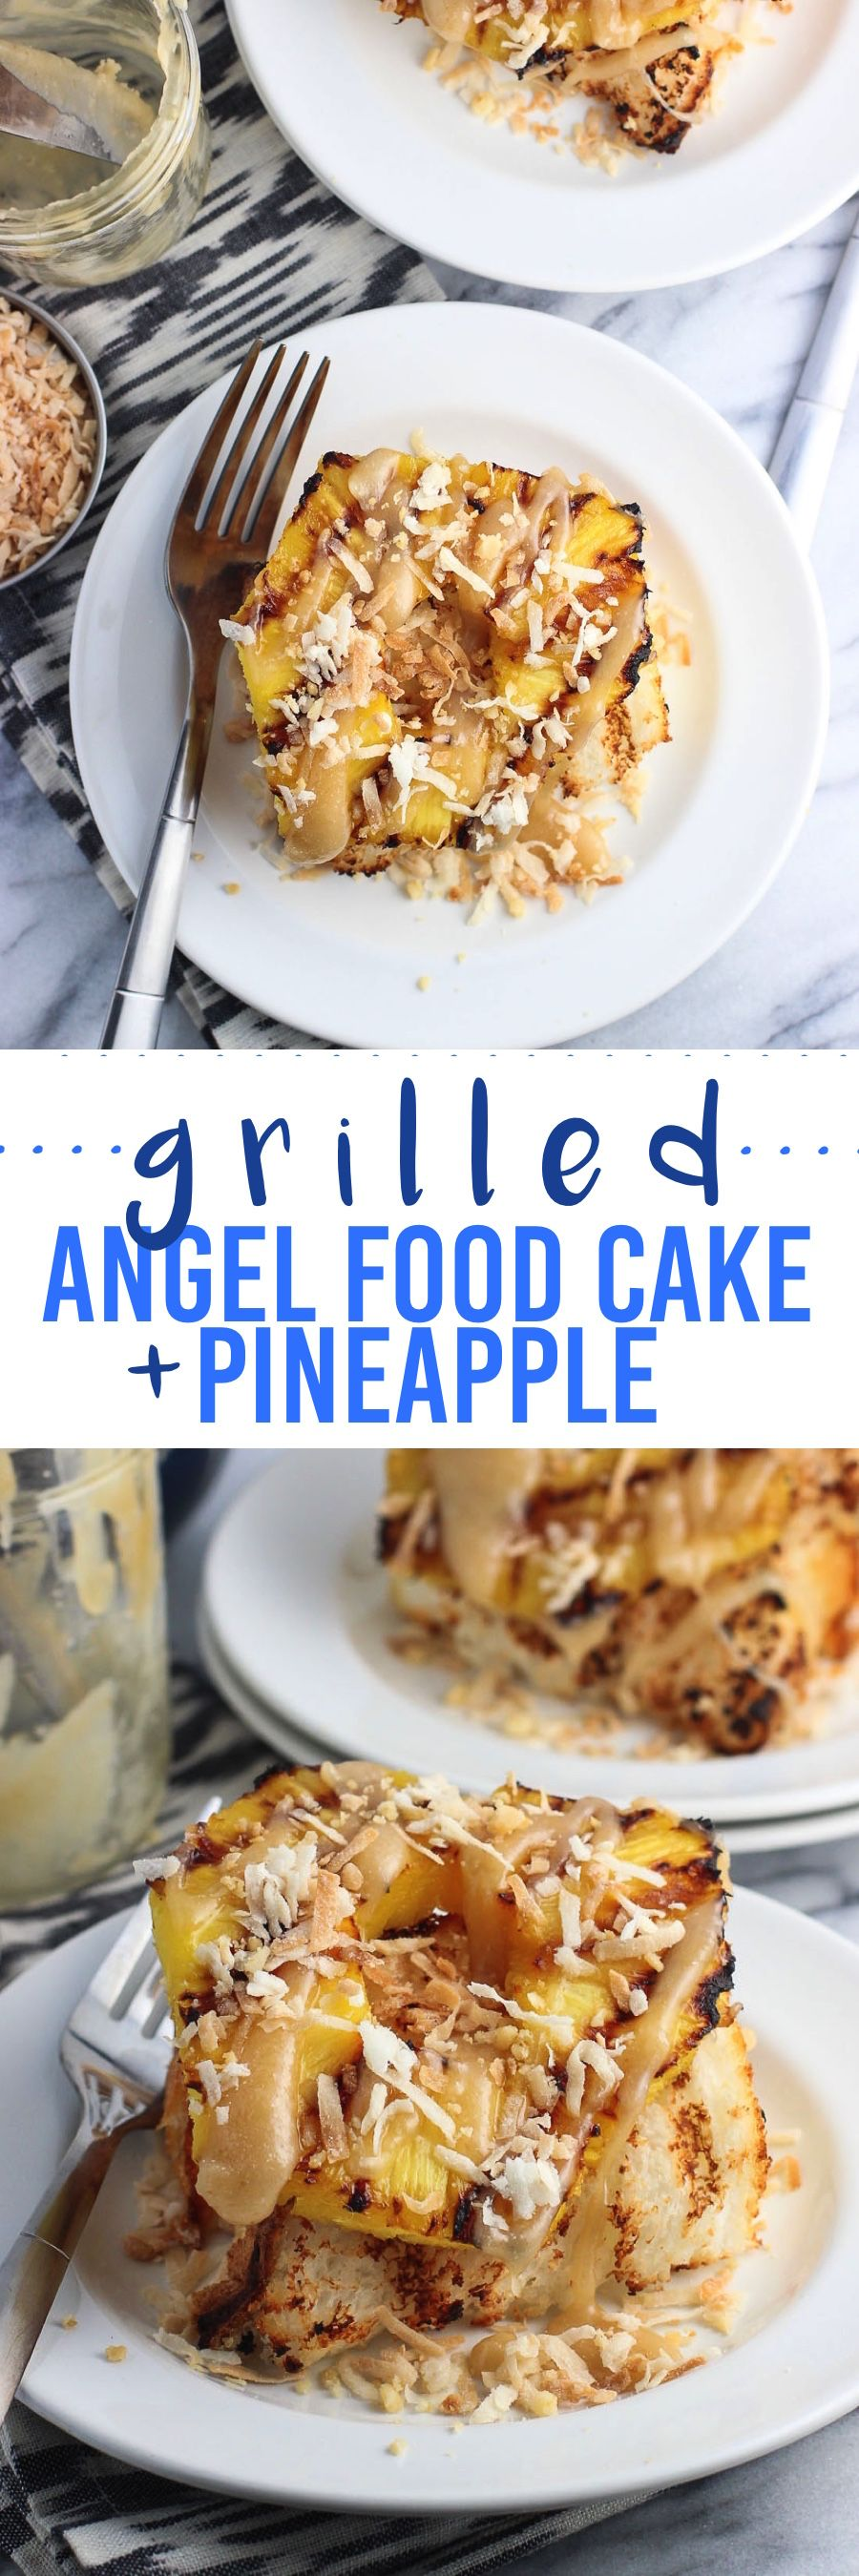 Grilled angel food cake slices are stacked high with grilled pineapple slices, toasted coconut flakes, and drizzles of caramel sauce for a tropical dessert. #grilleddesserts